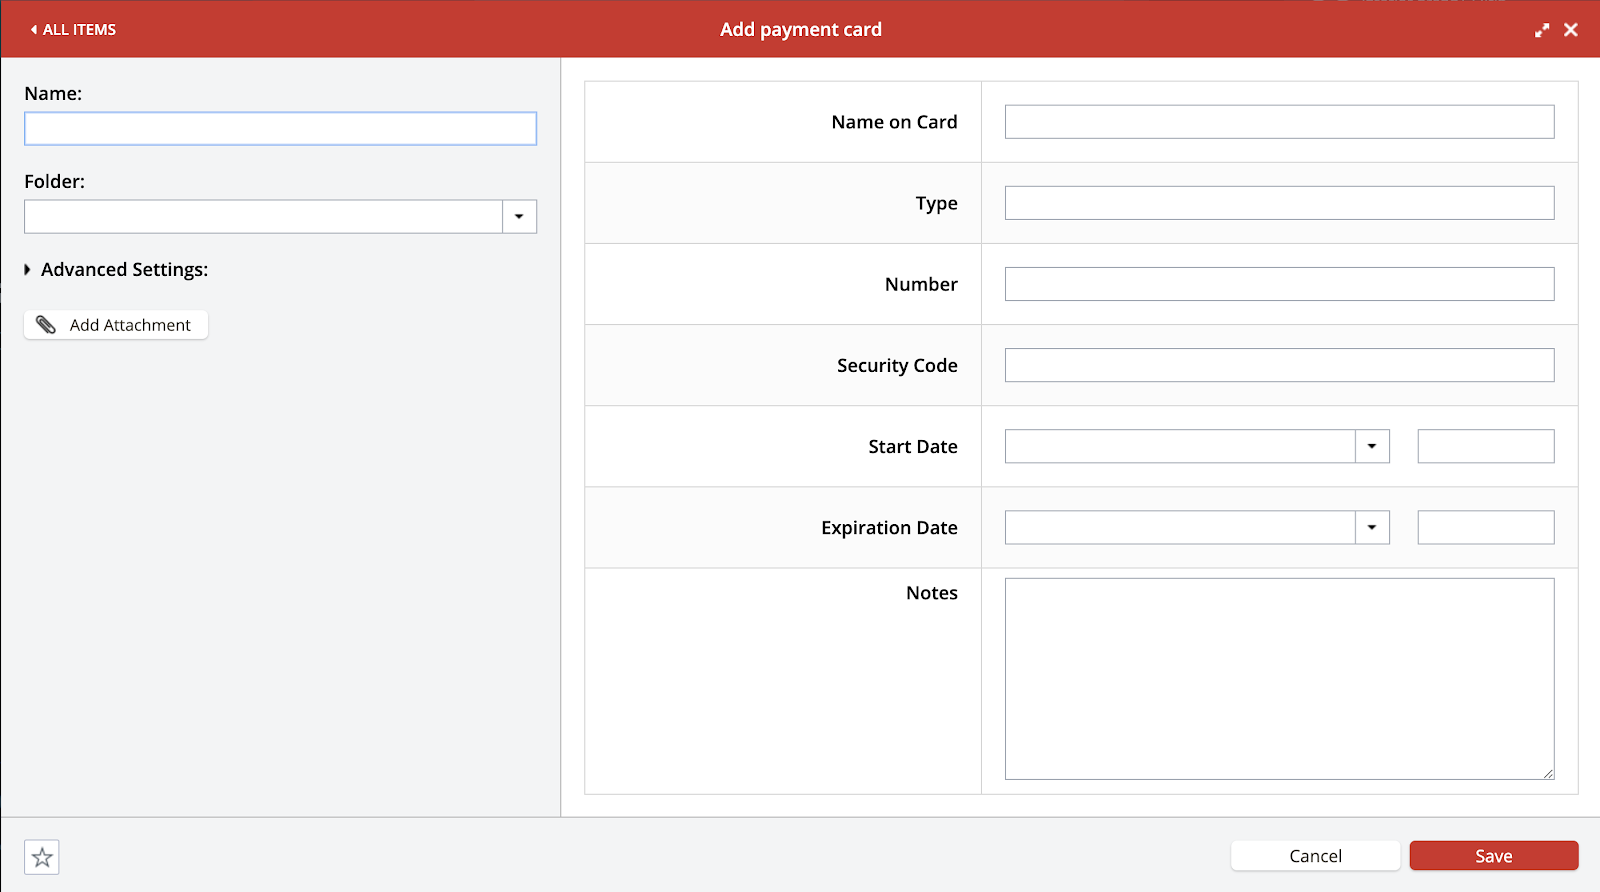 Form to add a new payment card to LastPass password manager, shown in Chrome browser. Part of the article by Hana Clode Marketing 'LastPass Password Manager - Apps to Make Your Life Easier'.